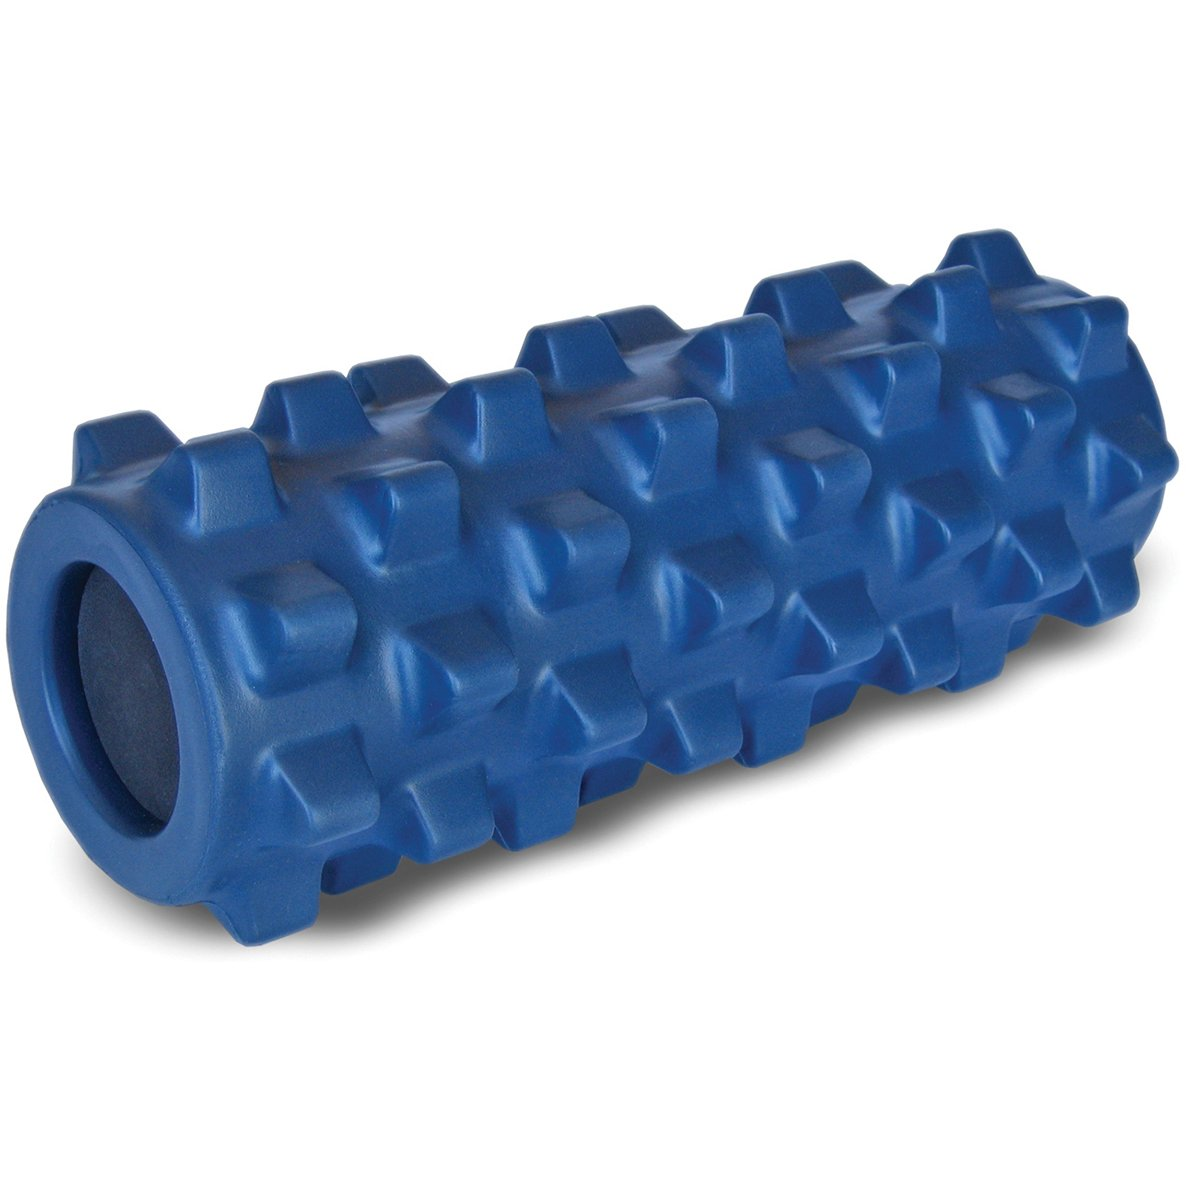 RumbleRoller RRC126 - Half Size 12 Inches - Blue - Original - Textured Muscle Foam Roller - Relieve Sore Muscles- Your Own Portable Massage Therapist - Patented Foam Roller Technology